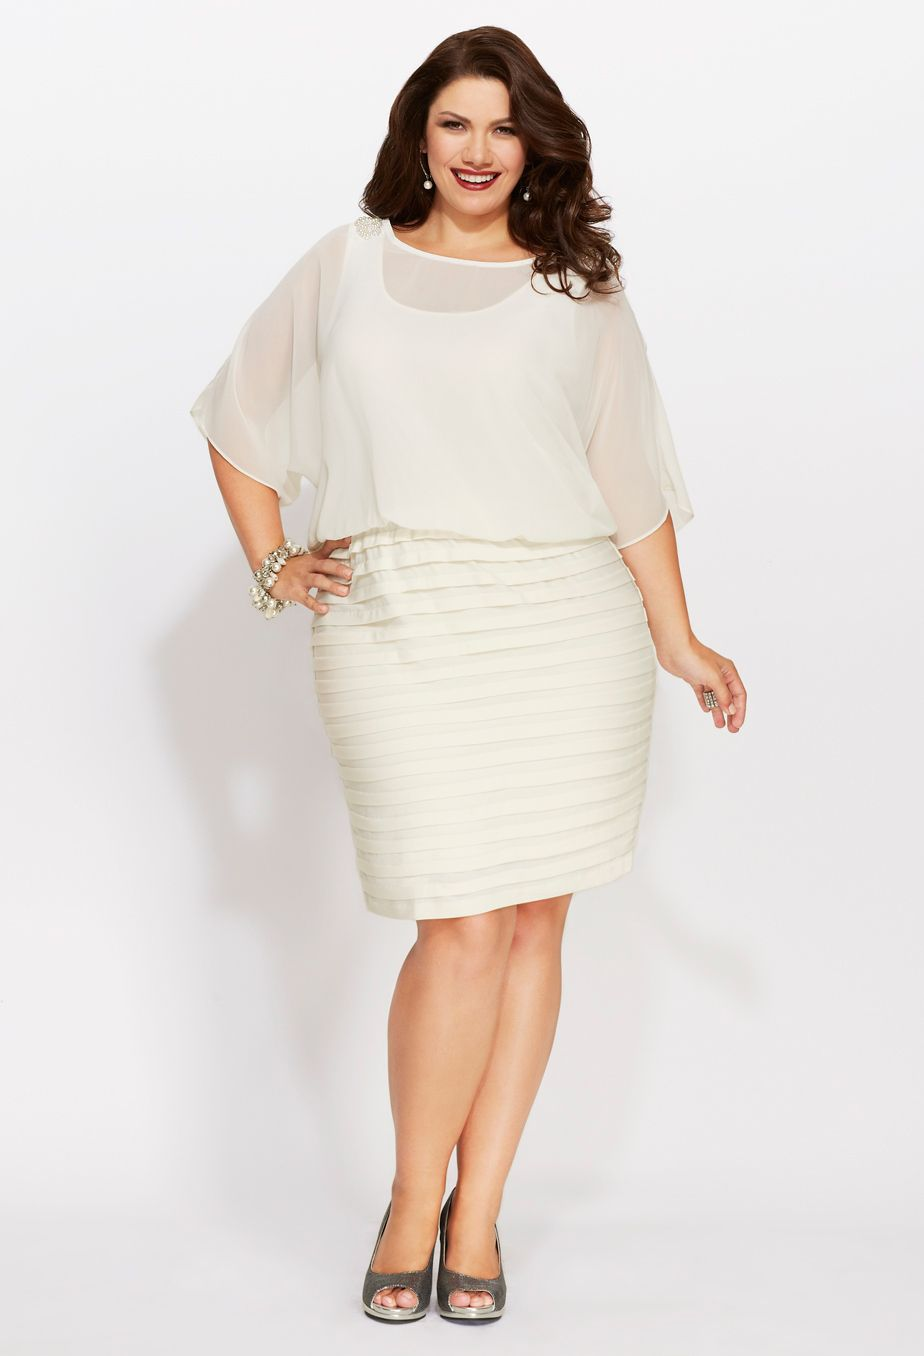 Plus Size Chiffon Pleat Bottom Dress | Plus Size Party Dresses ...